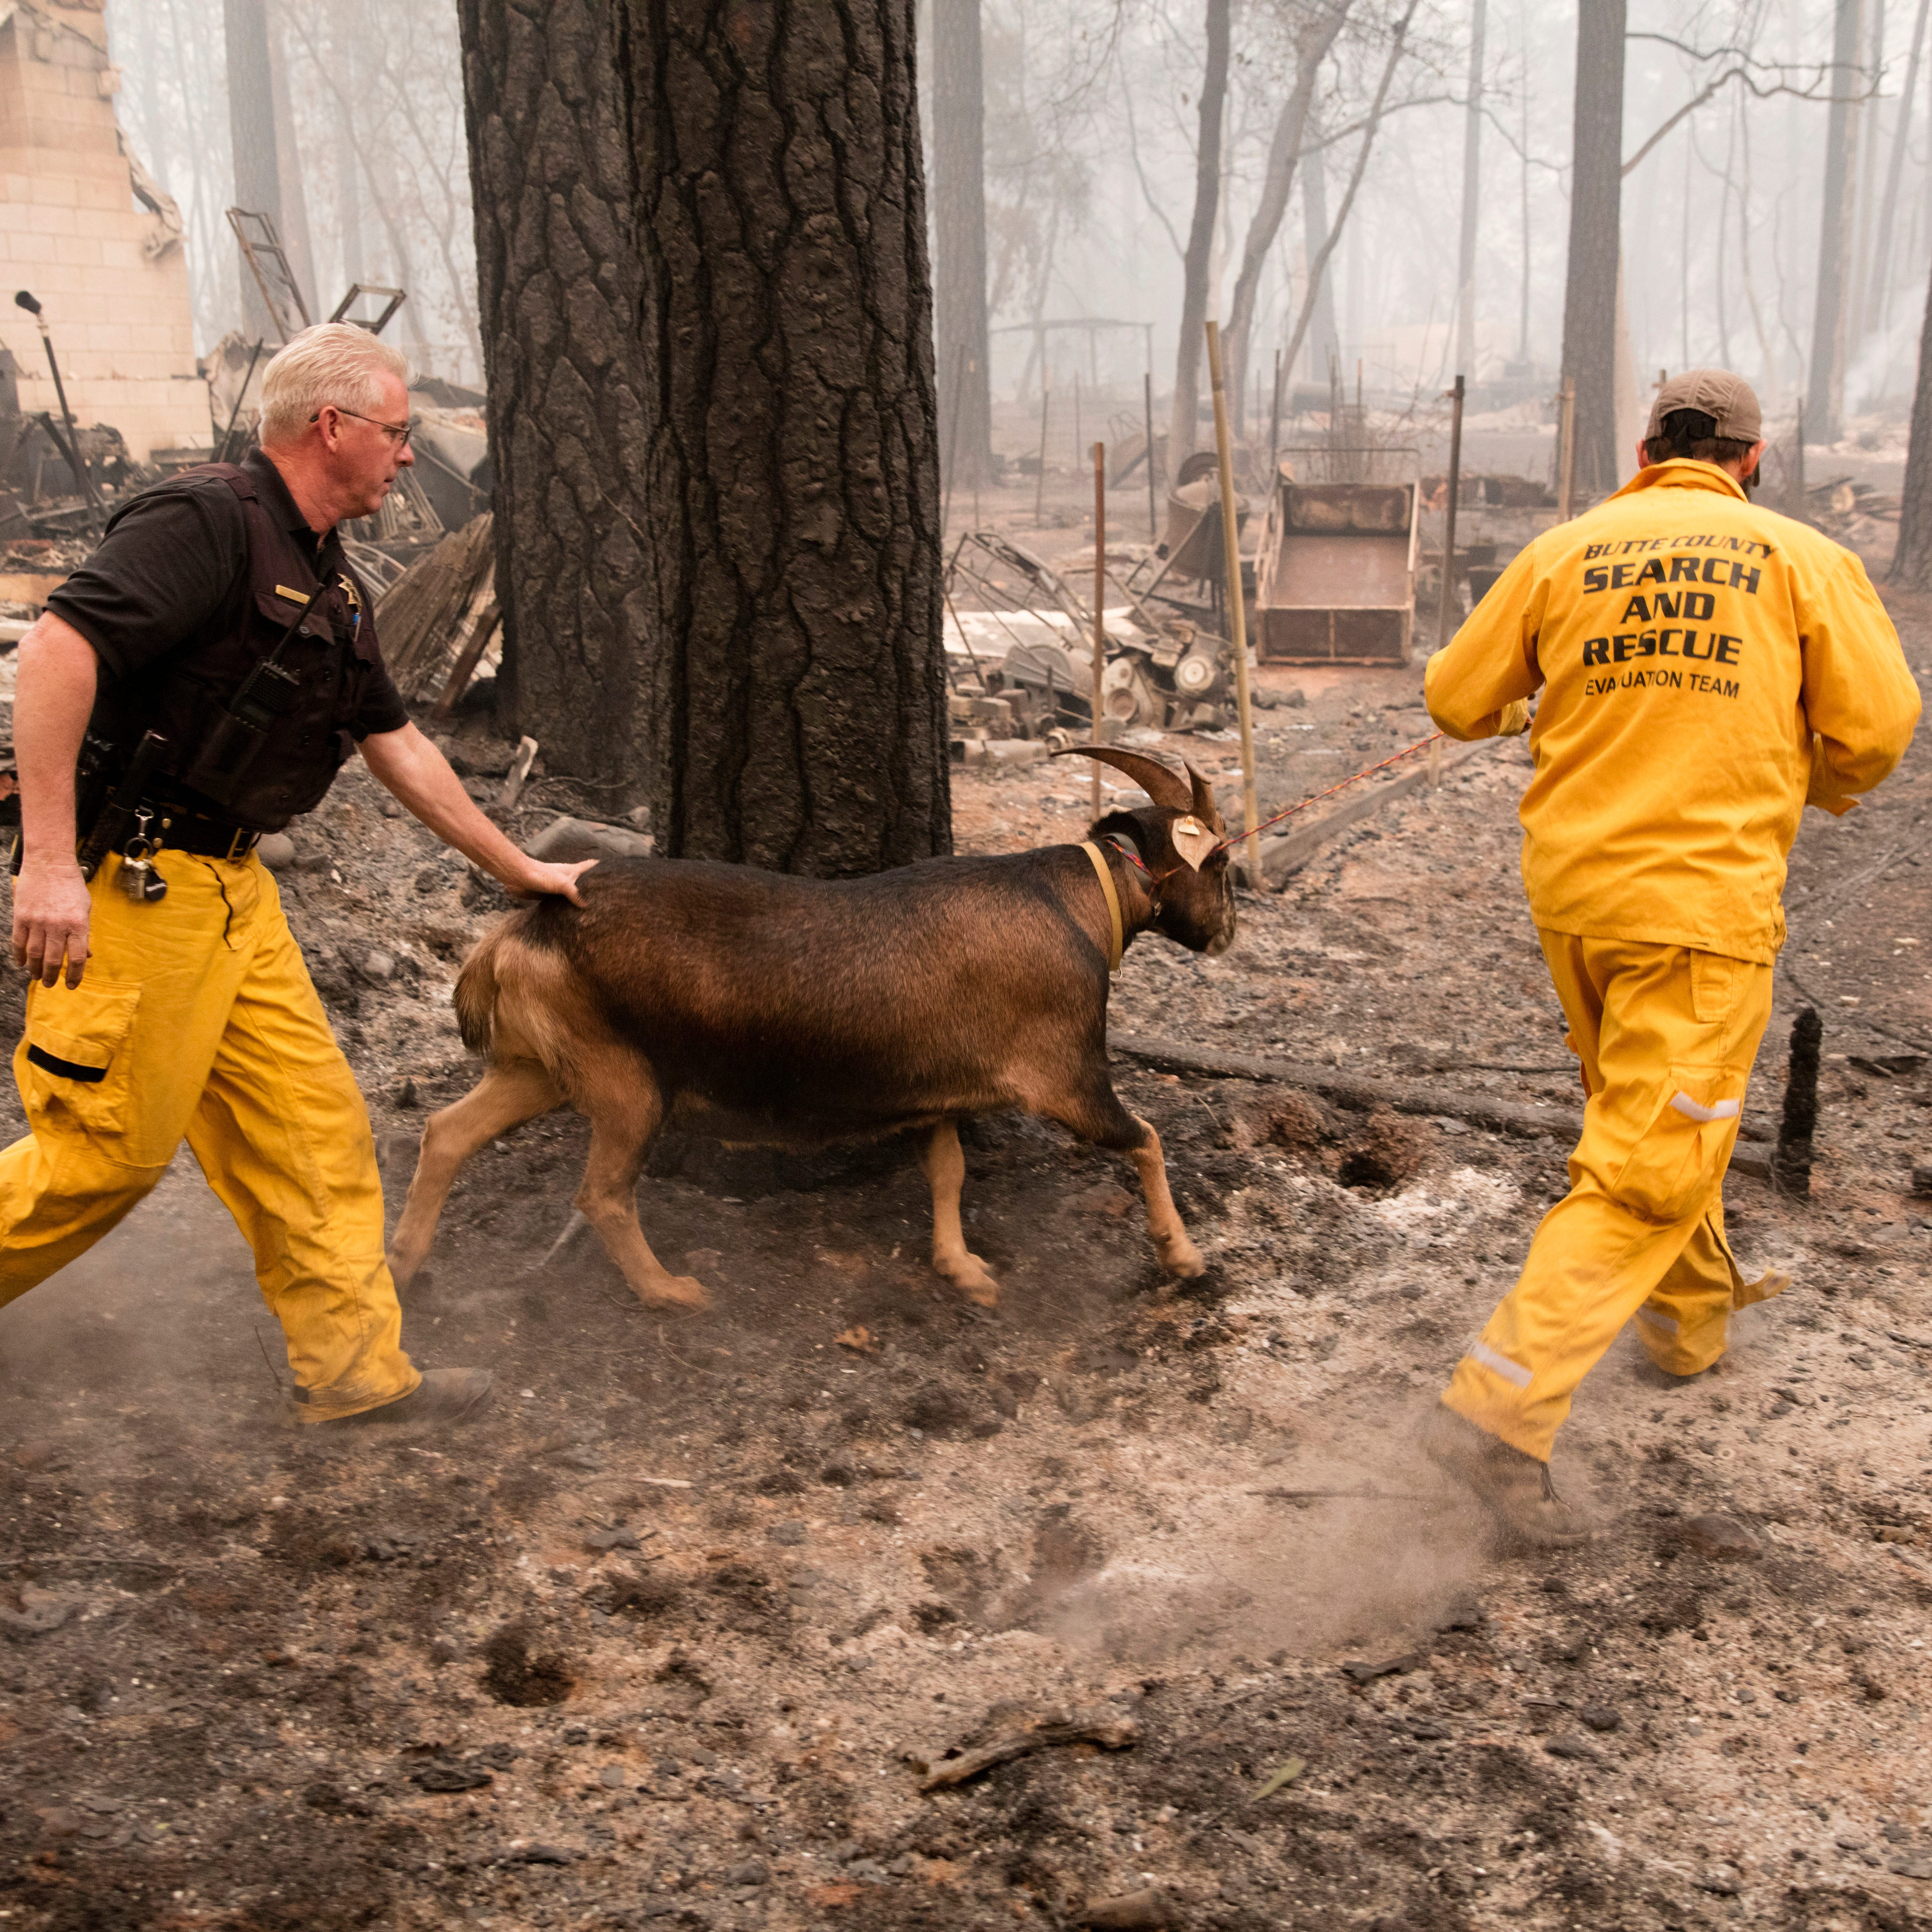 Butte County Sheriff Search and Rescue crews guide an abandon goat to a corral where other abandoned animals temporally held as the Camp Fire continues to burn through the region, fueled by high winds in Butte County, Calif., Nov. 10, 2018.